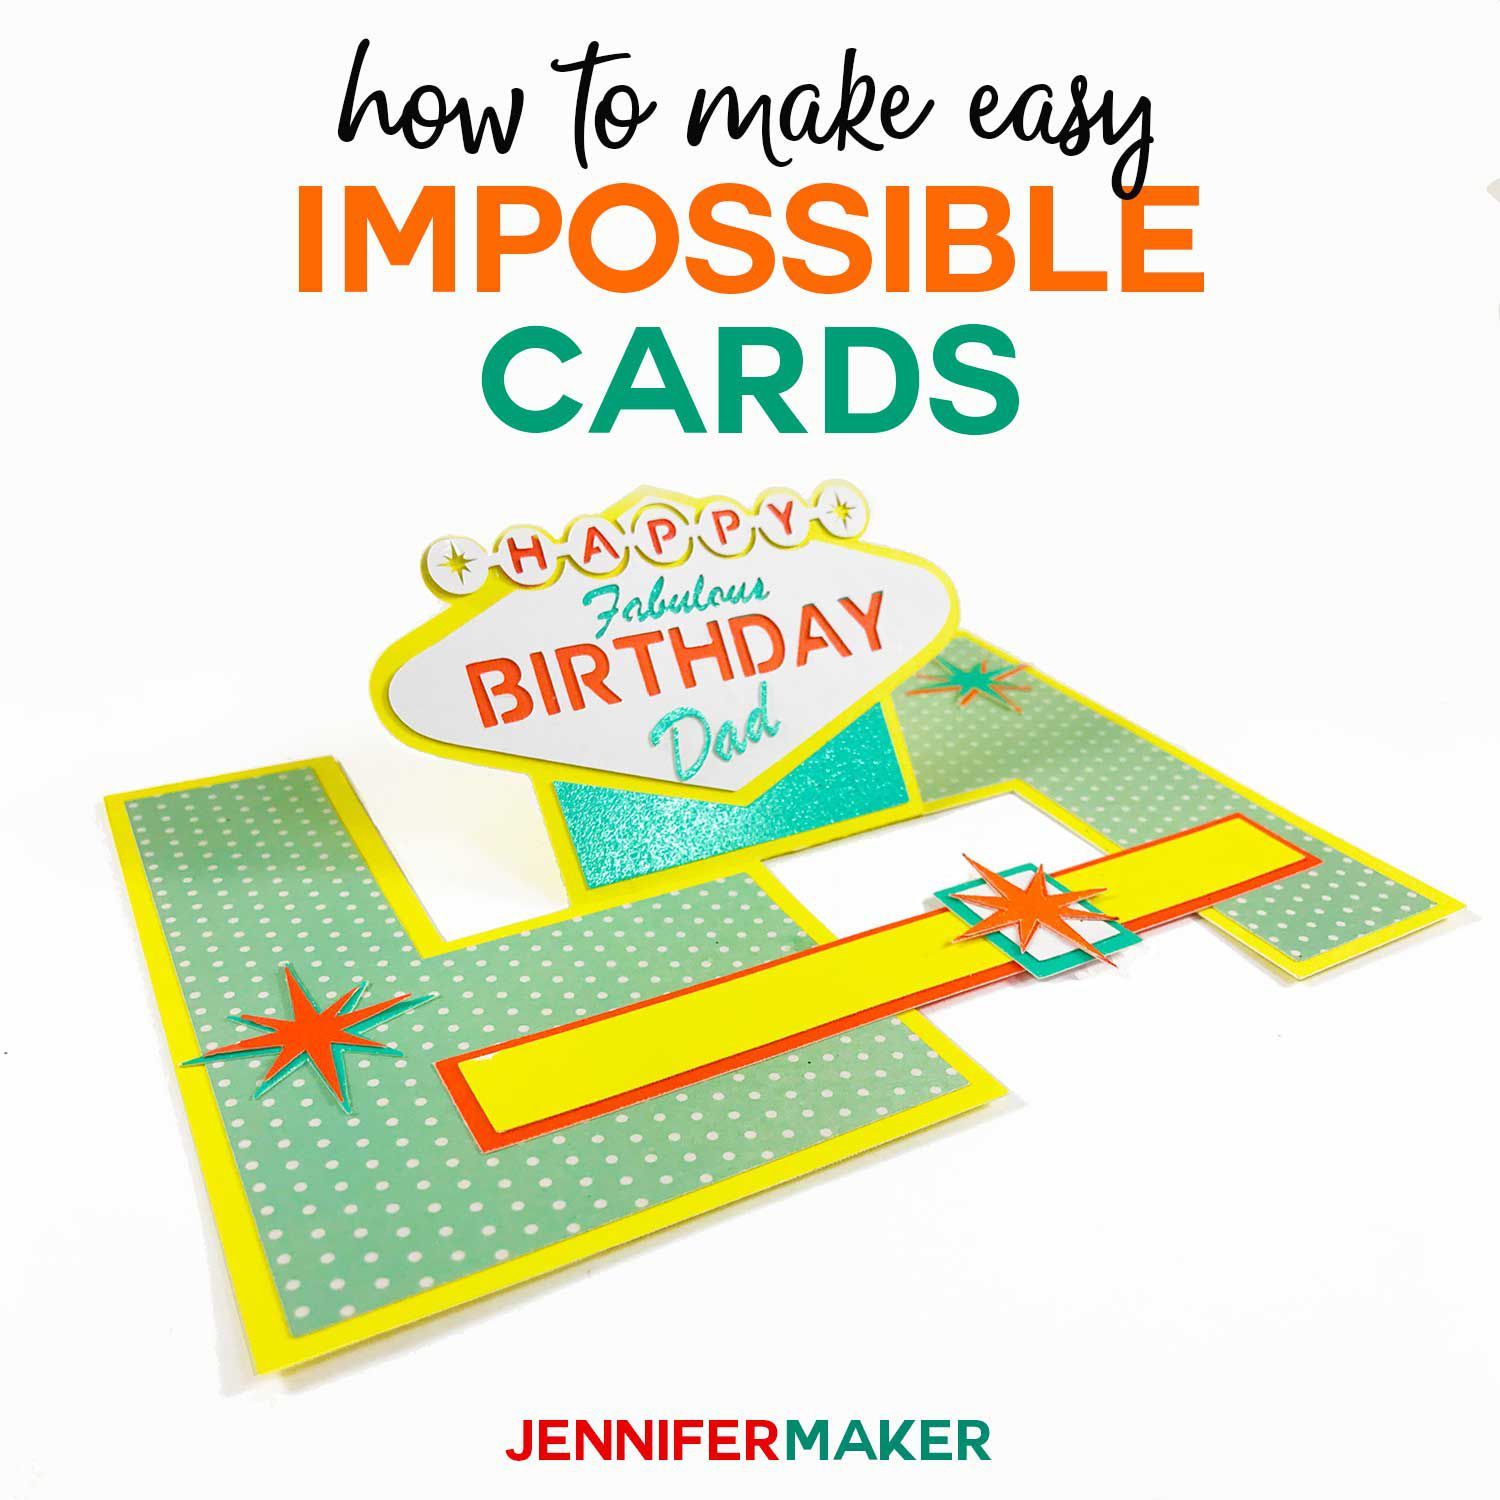 006 Remarkable Pop Up Card Template For Birthday Image  Birthdays Free Download PdfFull